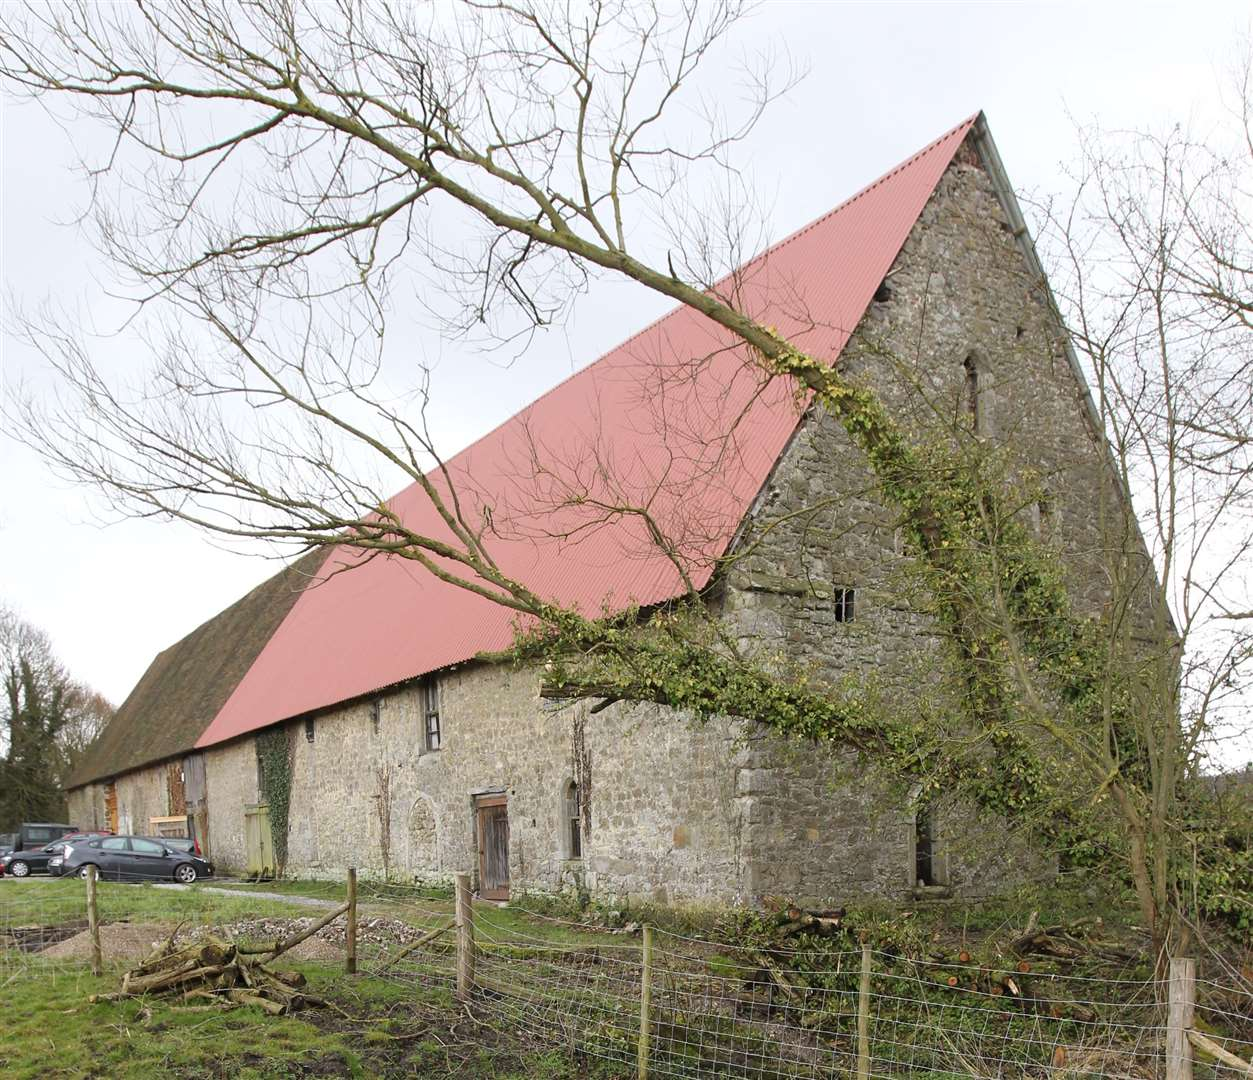 Boxley Abbey Barn in Sandling. Picture by: John Westhrop